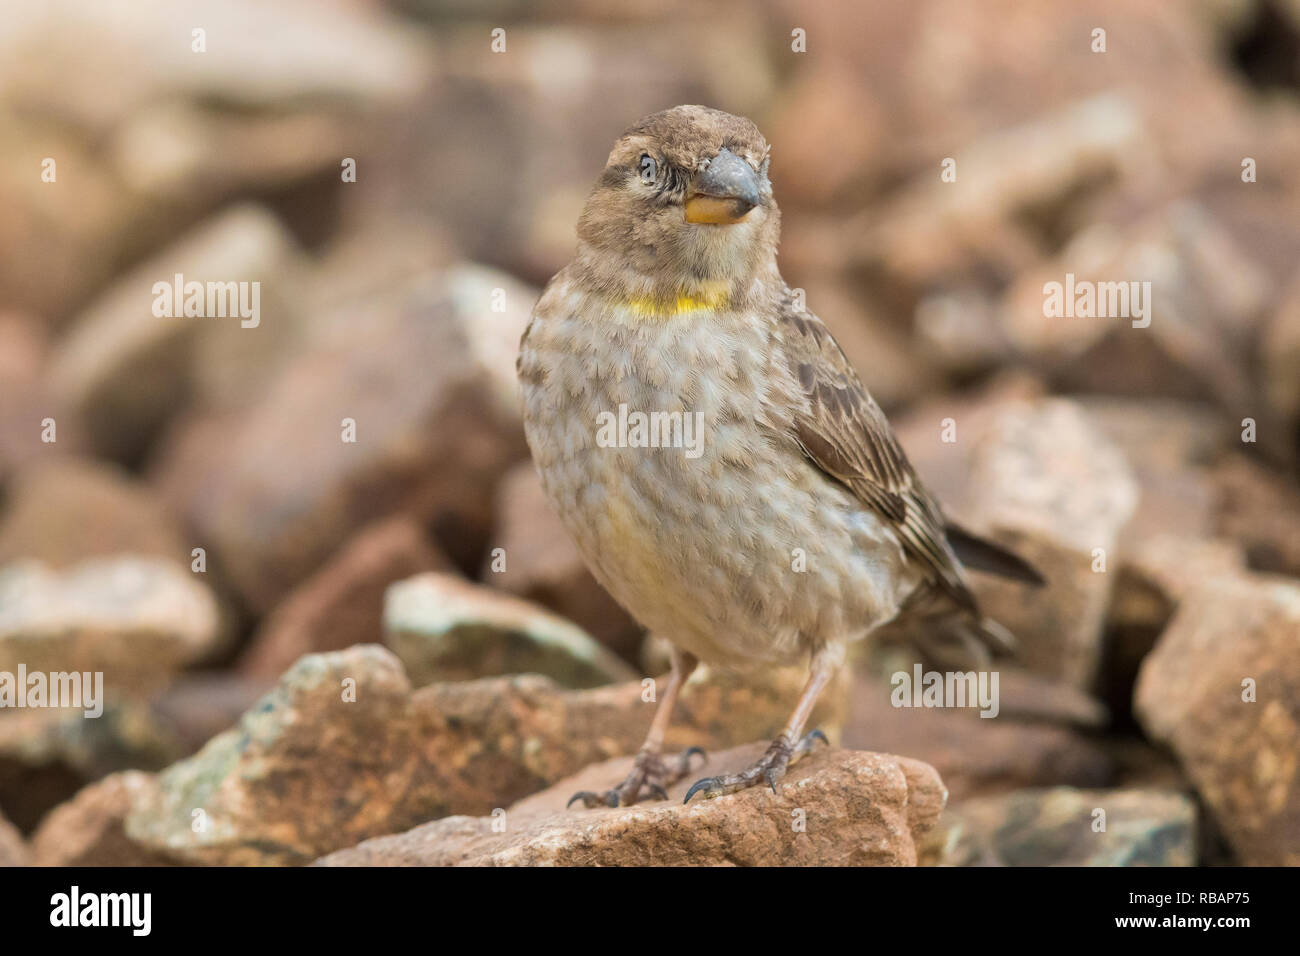 Rock Sparrow (Petronia petronia barbara), front view of an adult standing on a stone - Stock Image